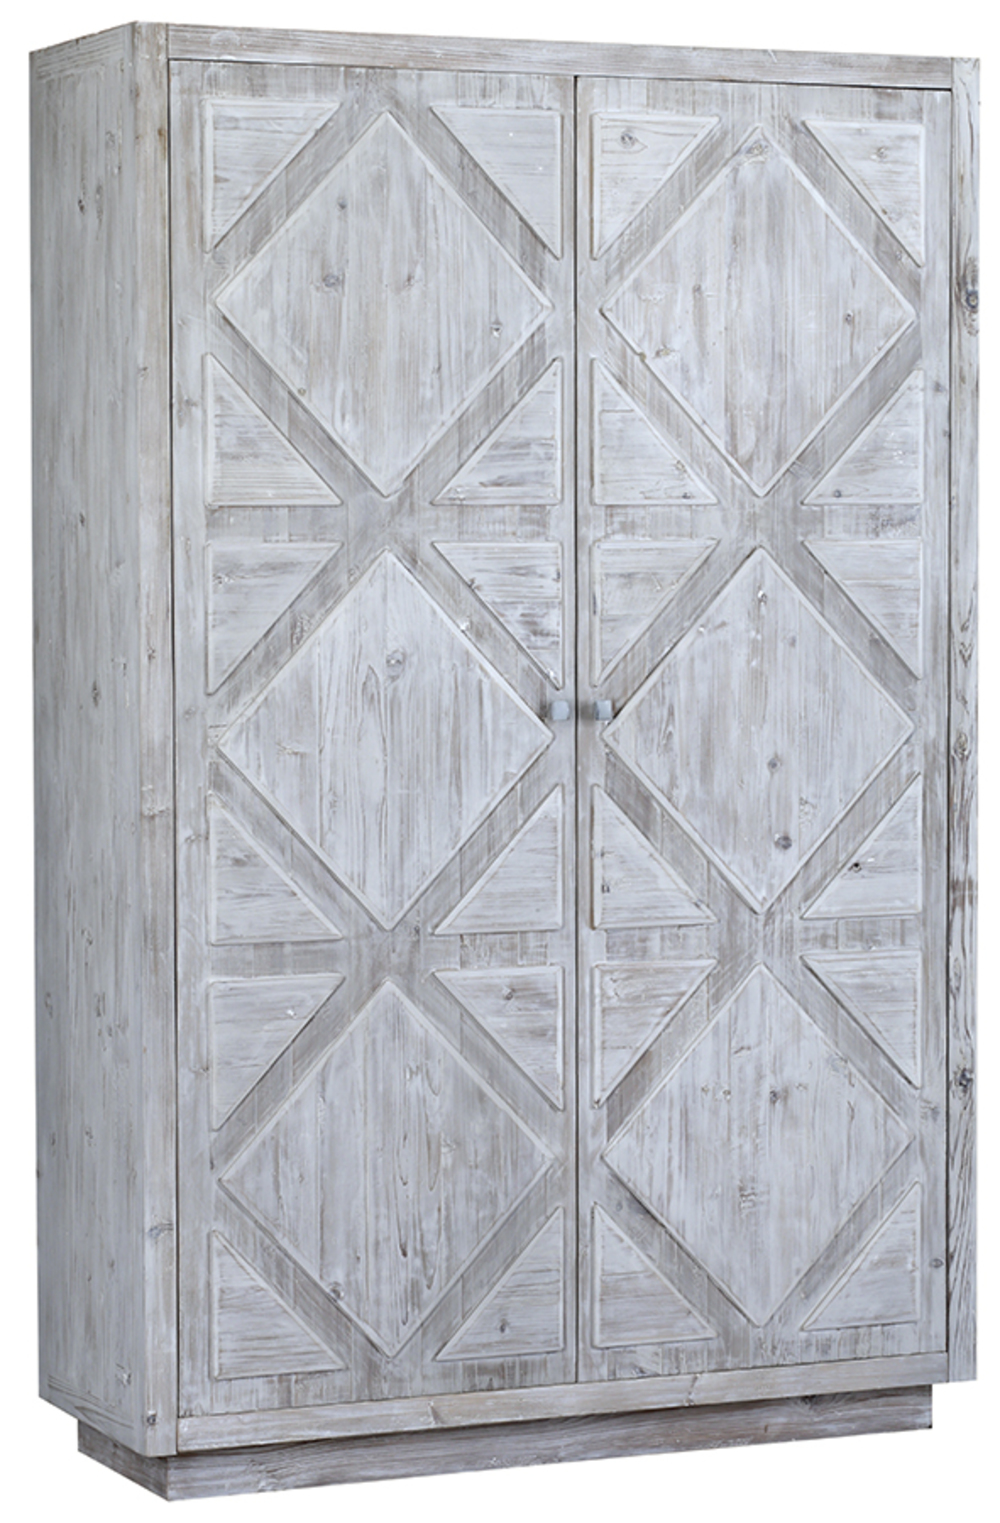 Dovetail Furniture - Mallow Cabinet